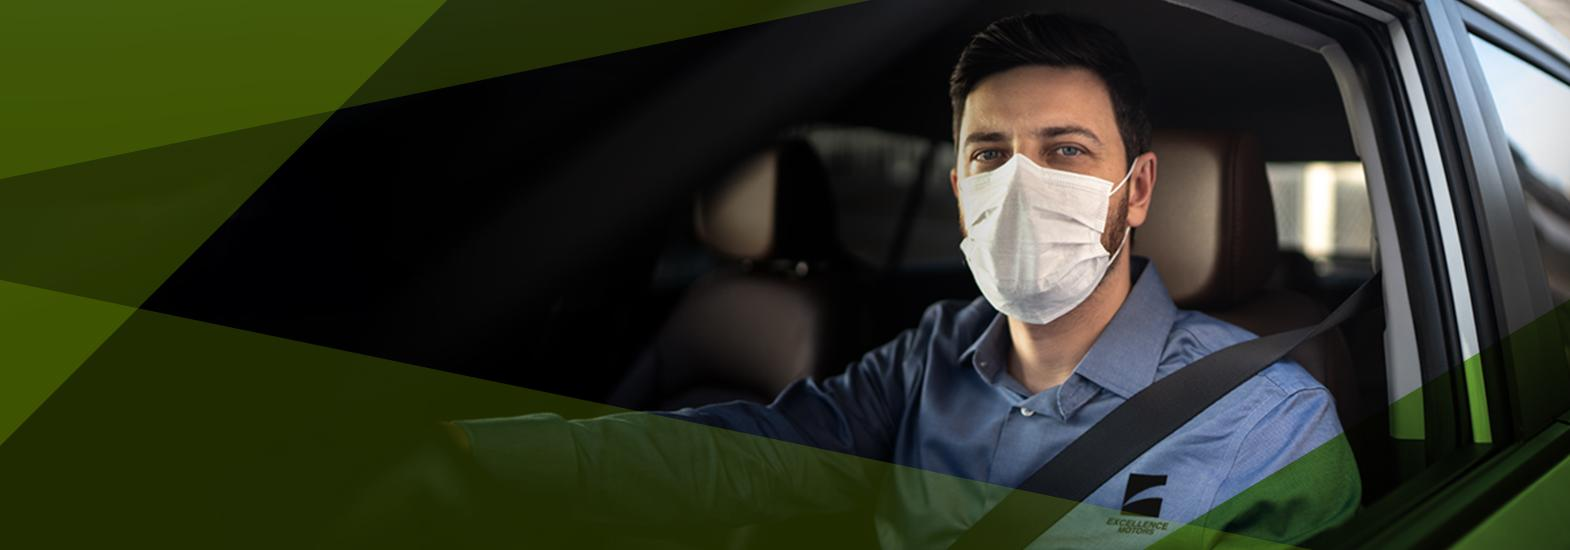 Man in car with mask